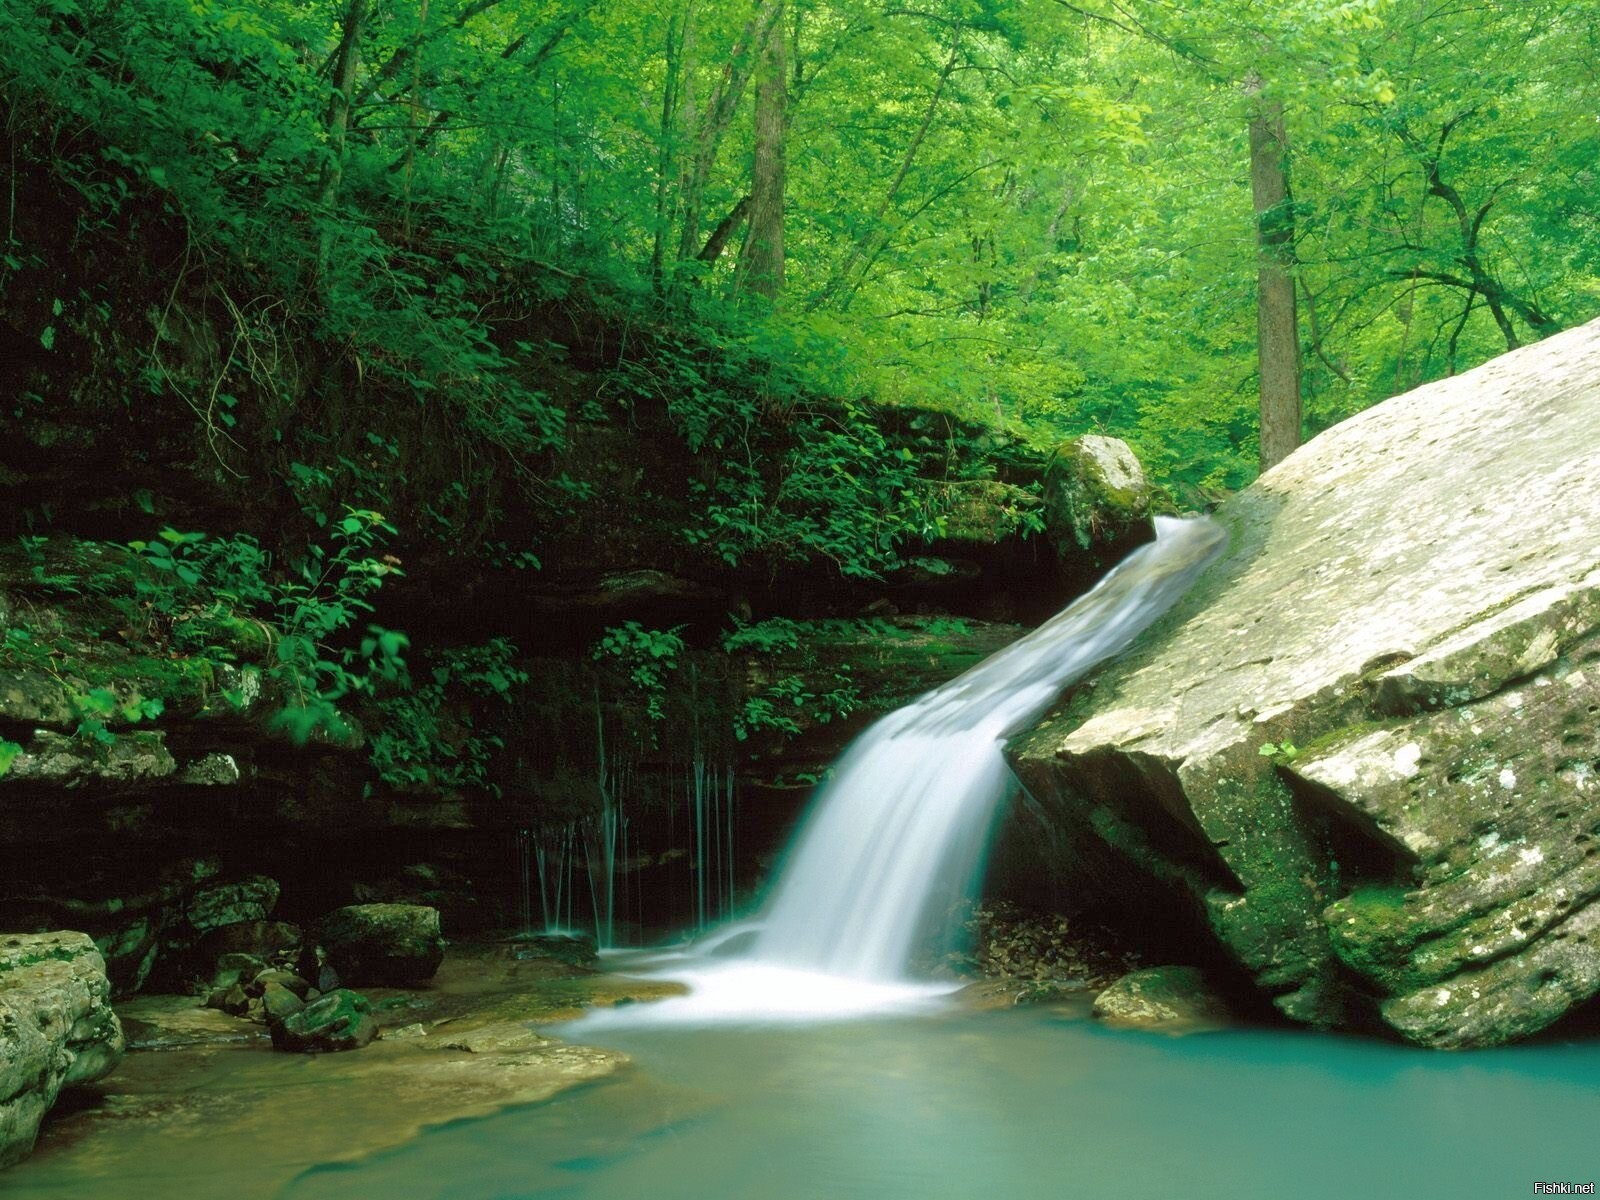 Indian Creek, Buffalo National River, Arkansas